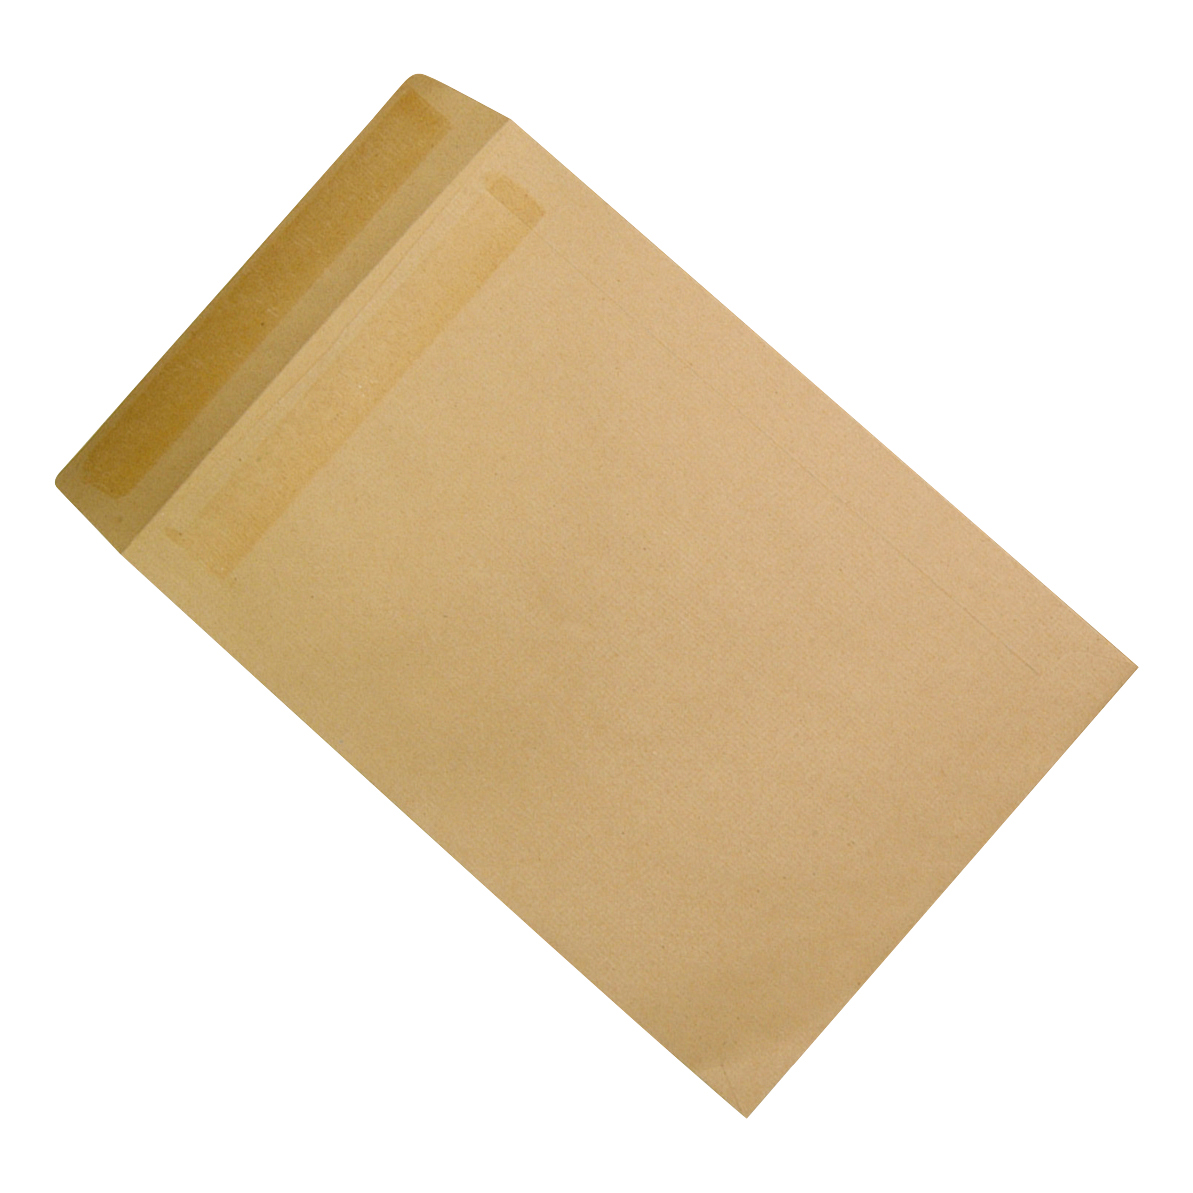 5 Star Office Envelopes Recycled 406x305mm Pocket Self Seal 115gsm Manilla [Pack 250]